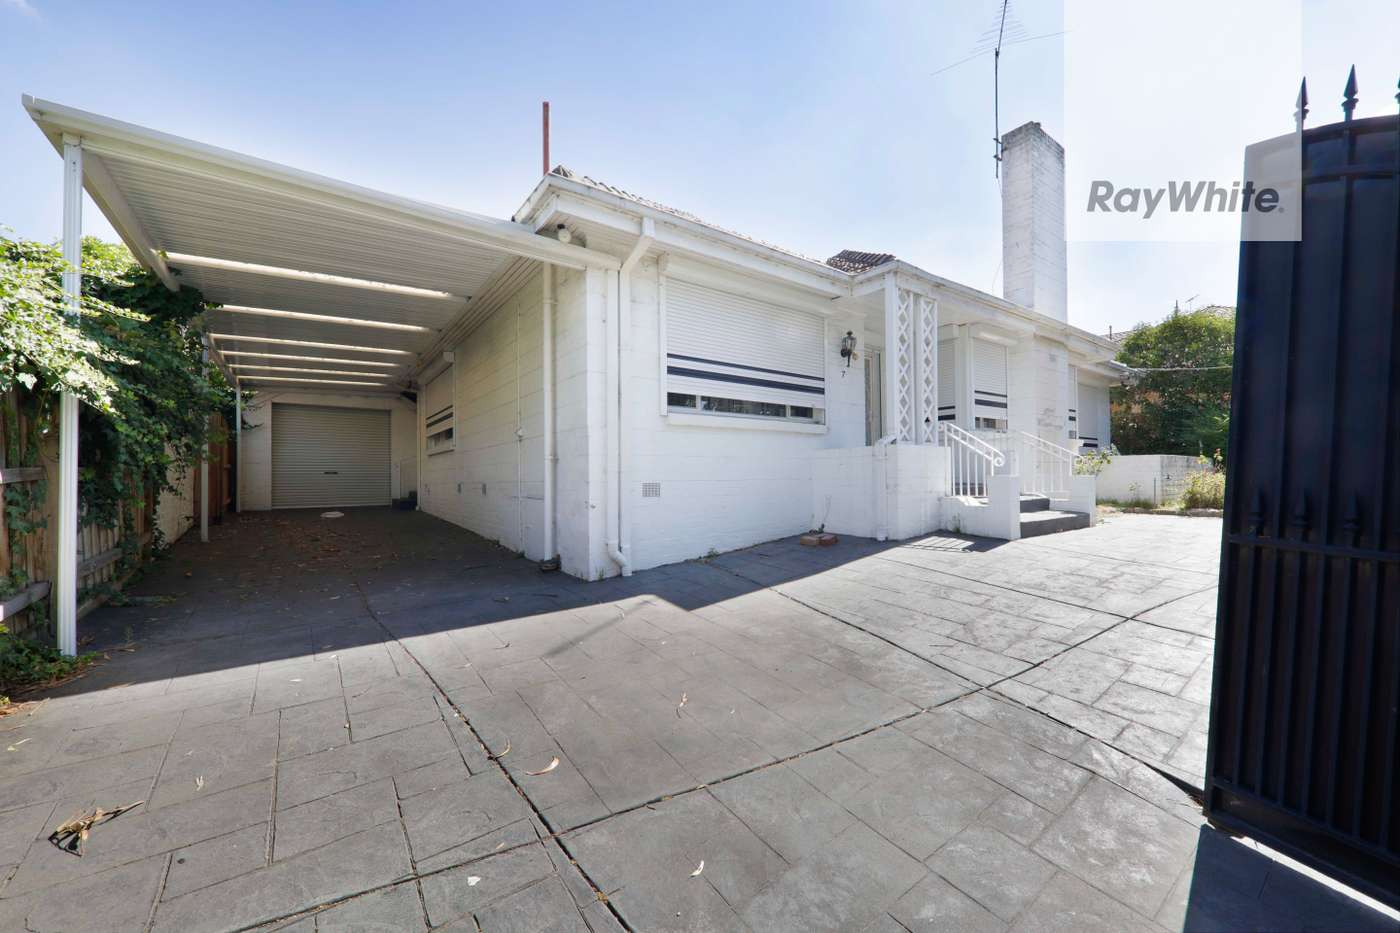 Main view of Homely house listing, 7 Sylvester Crescent, Malvern East, VIC 3145